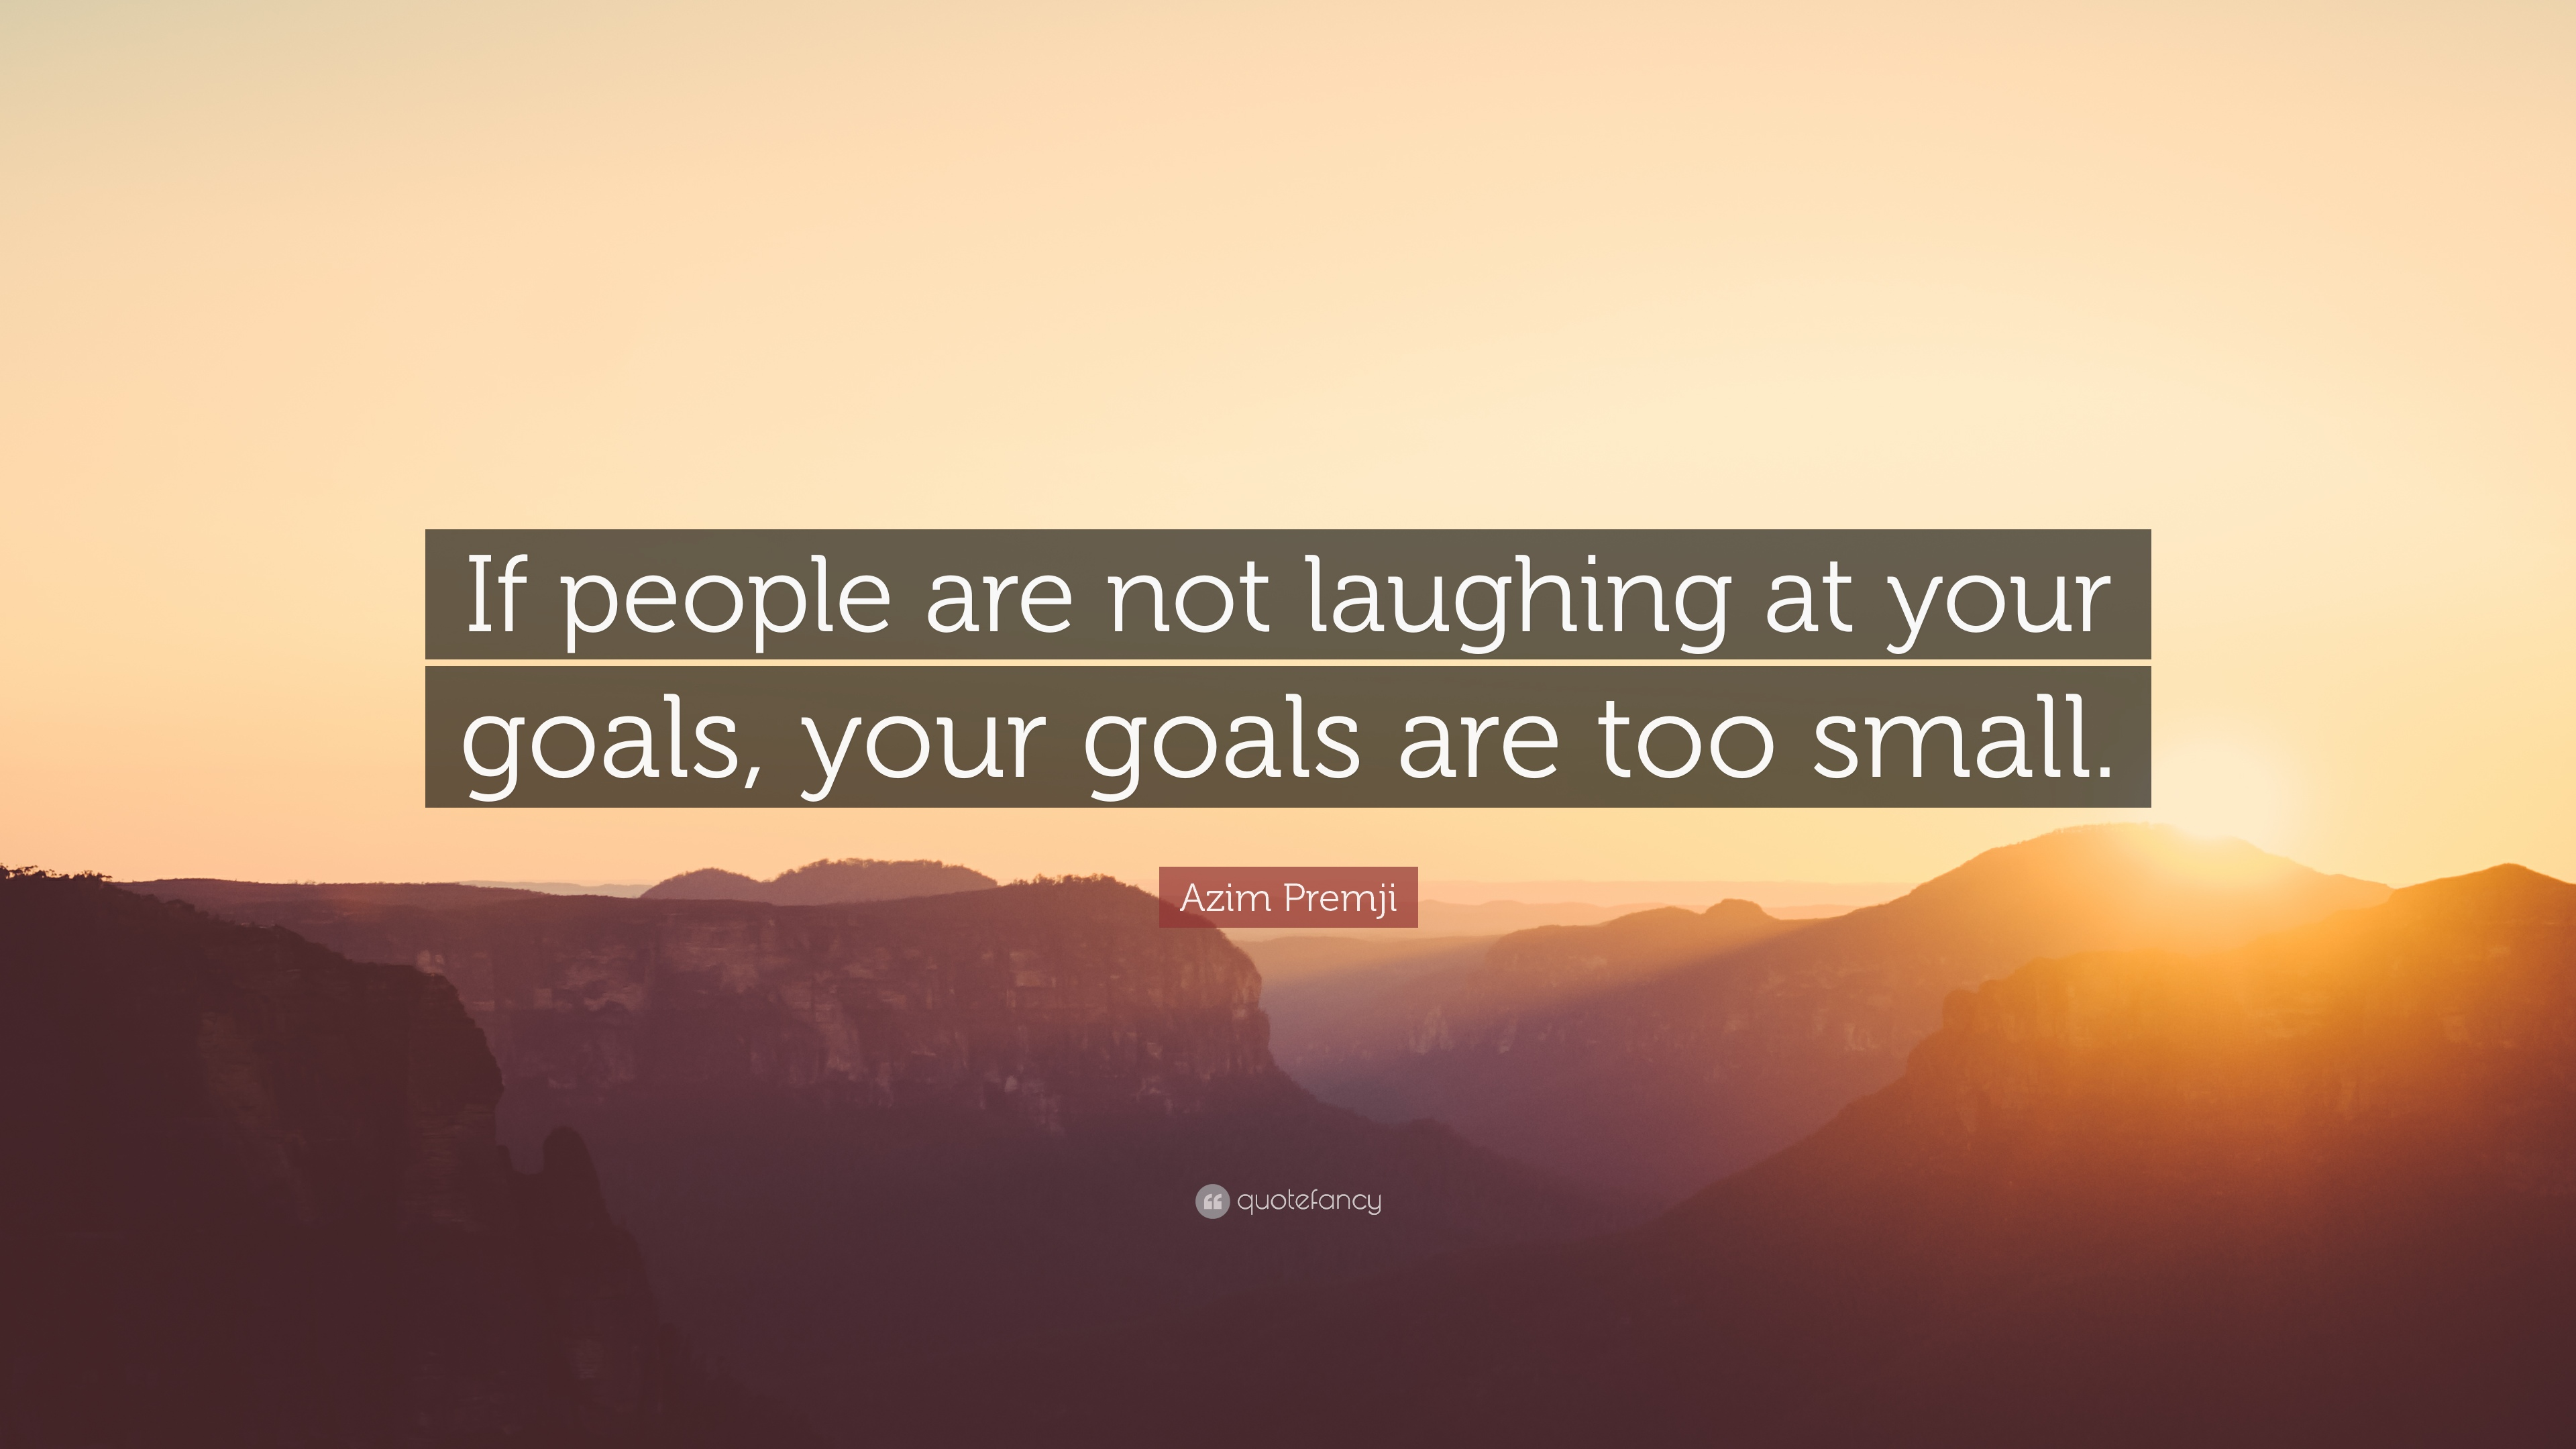 azim premji quote if people are not laughing at your goals your azim premji quote if people are not laughing at your goals your goals